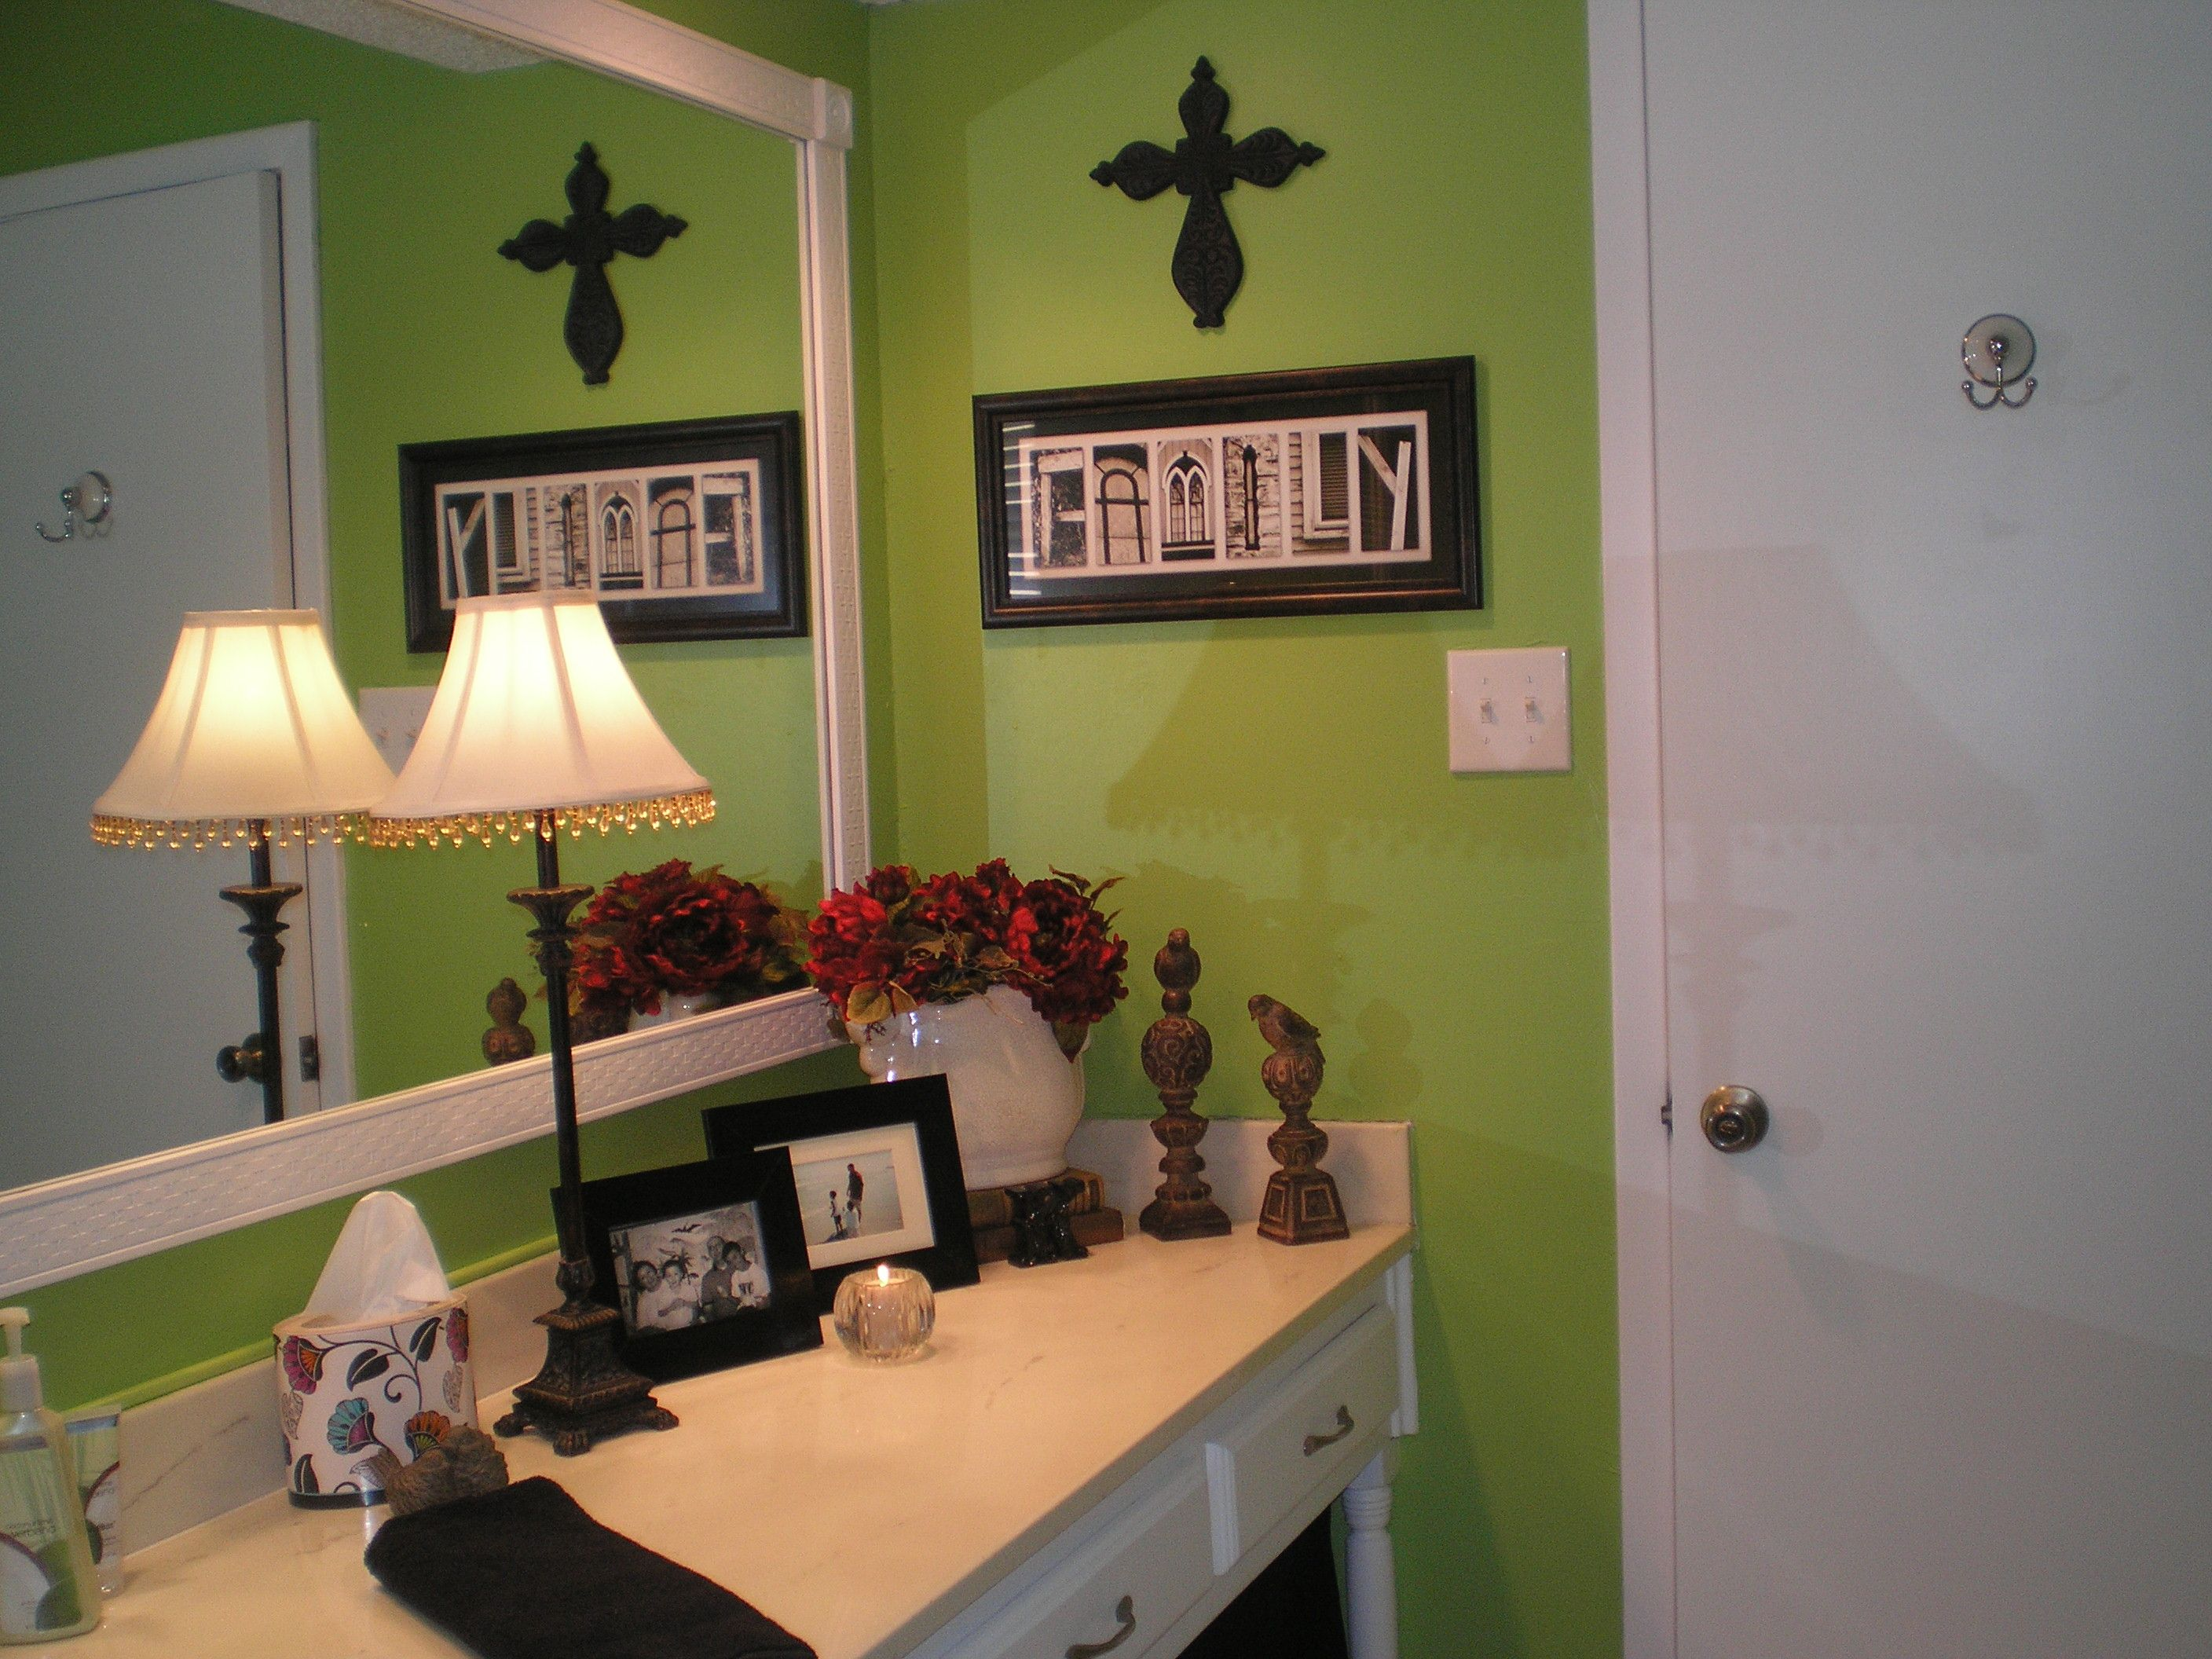 extraordinary lime green bathroom | My lime green bathroom with black, white and red accents ...